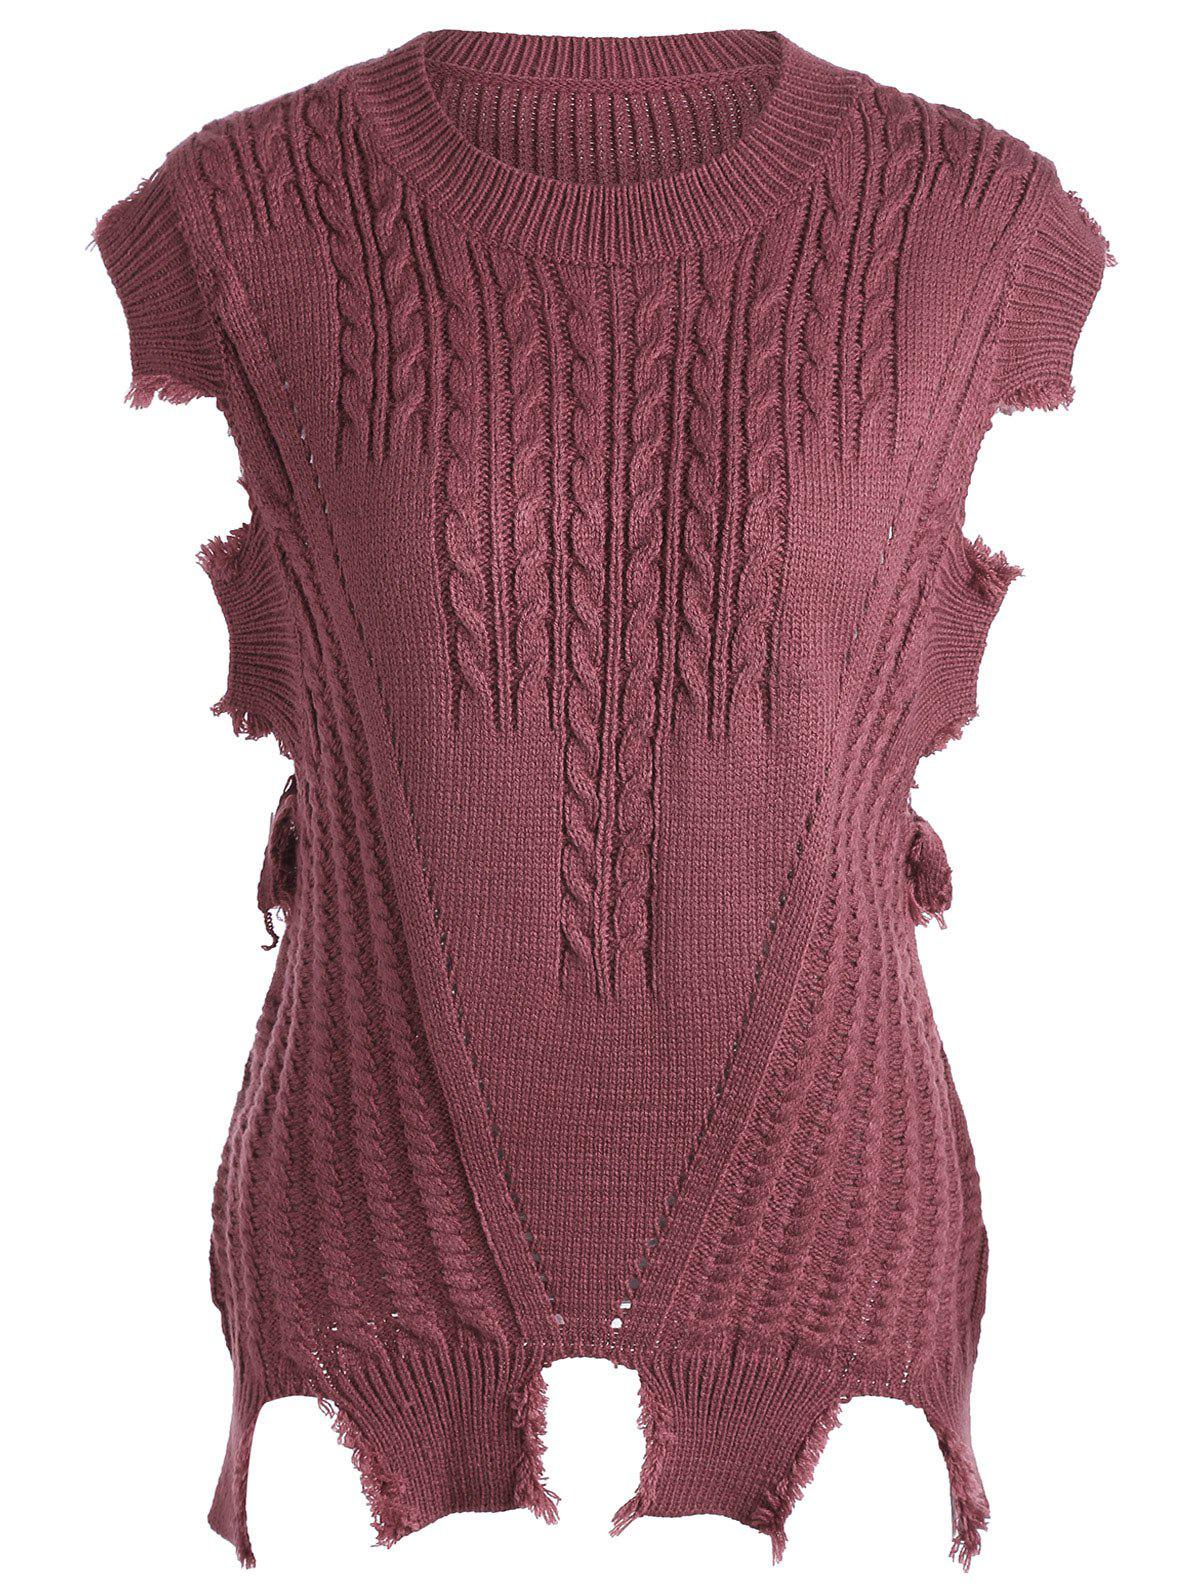 Cable Knit Sweater Vest charter club new blue sky women s medium m cable knit crewneck sweater $59 359